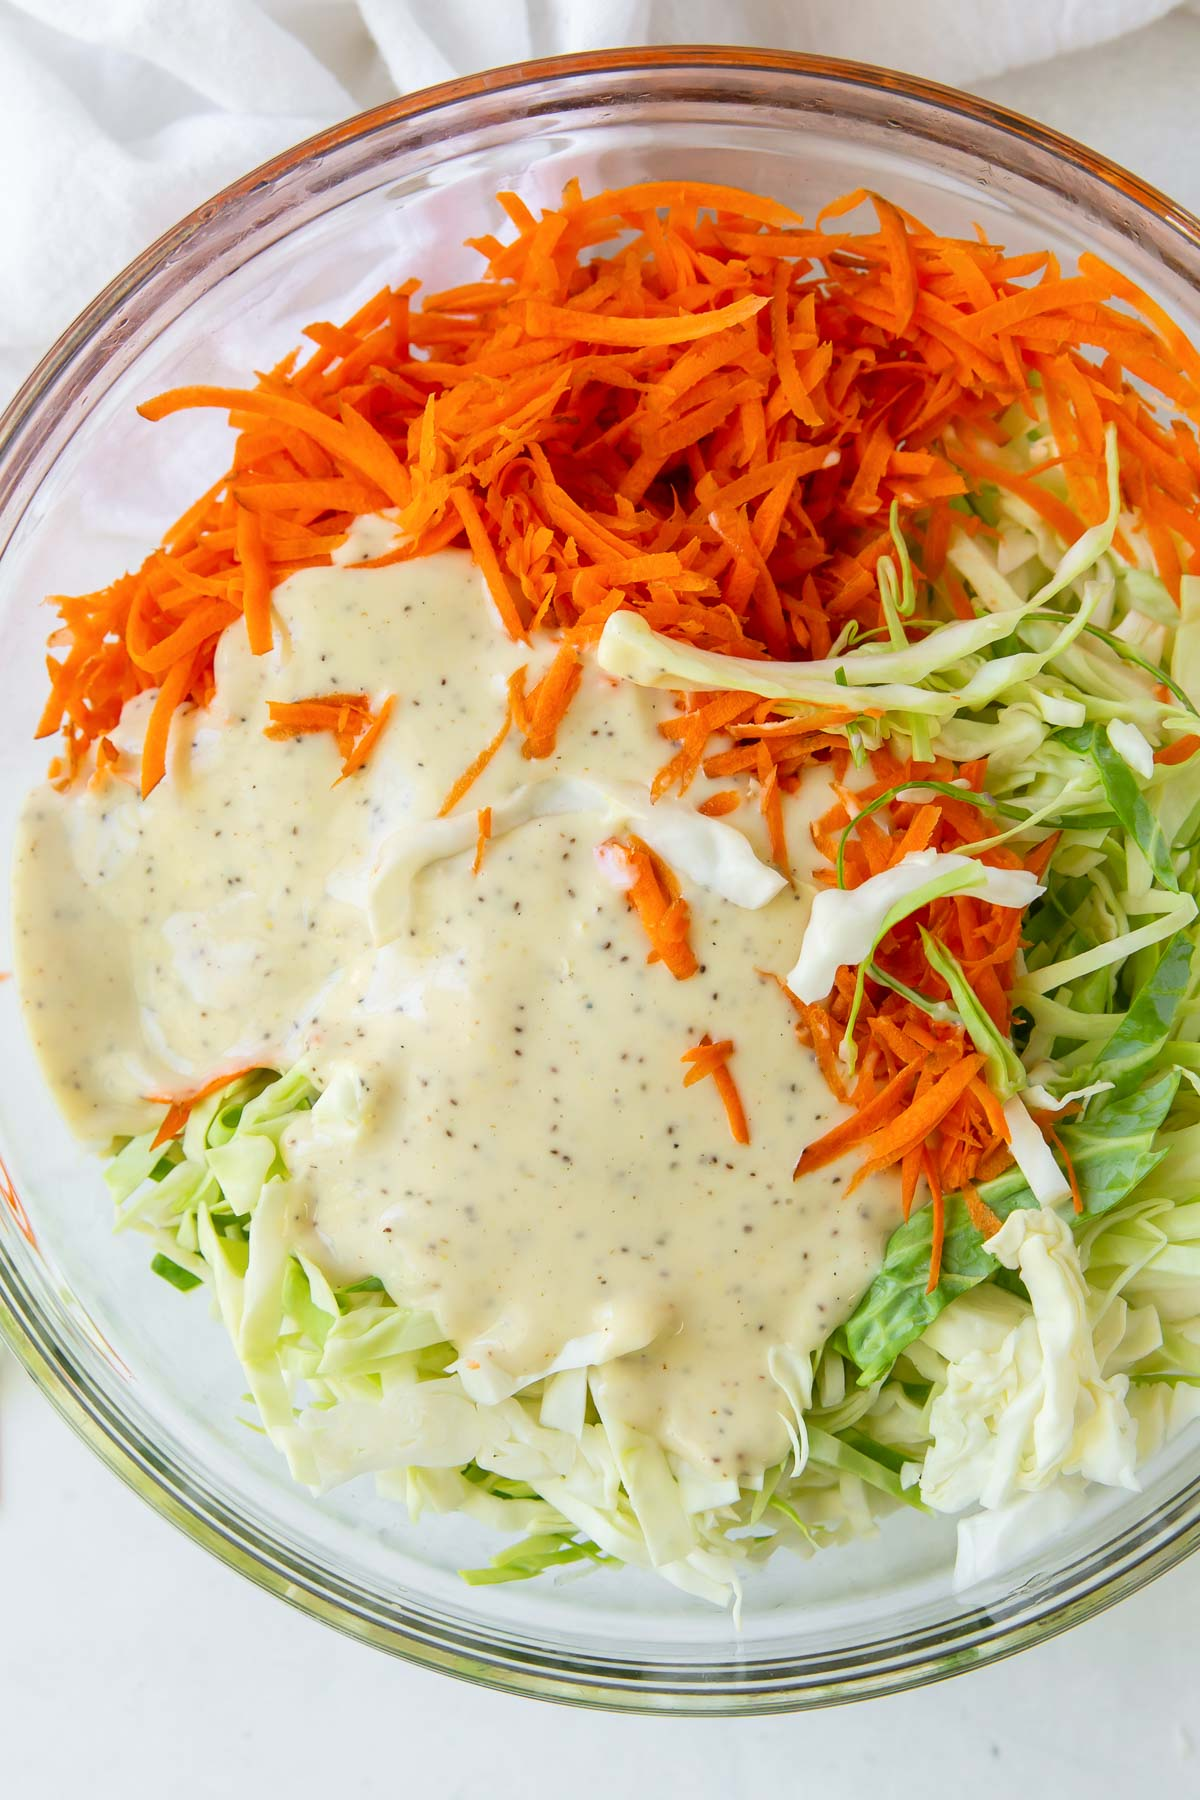 coleslaw dressing poured onto shredded cabbage and carrot